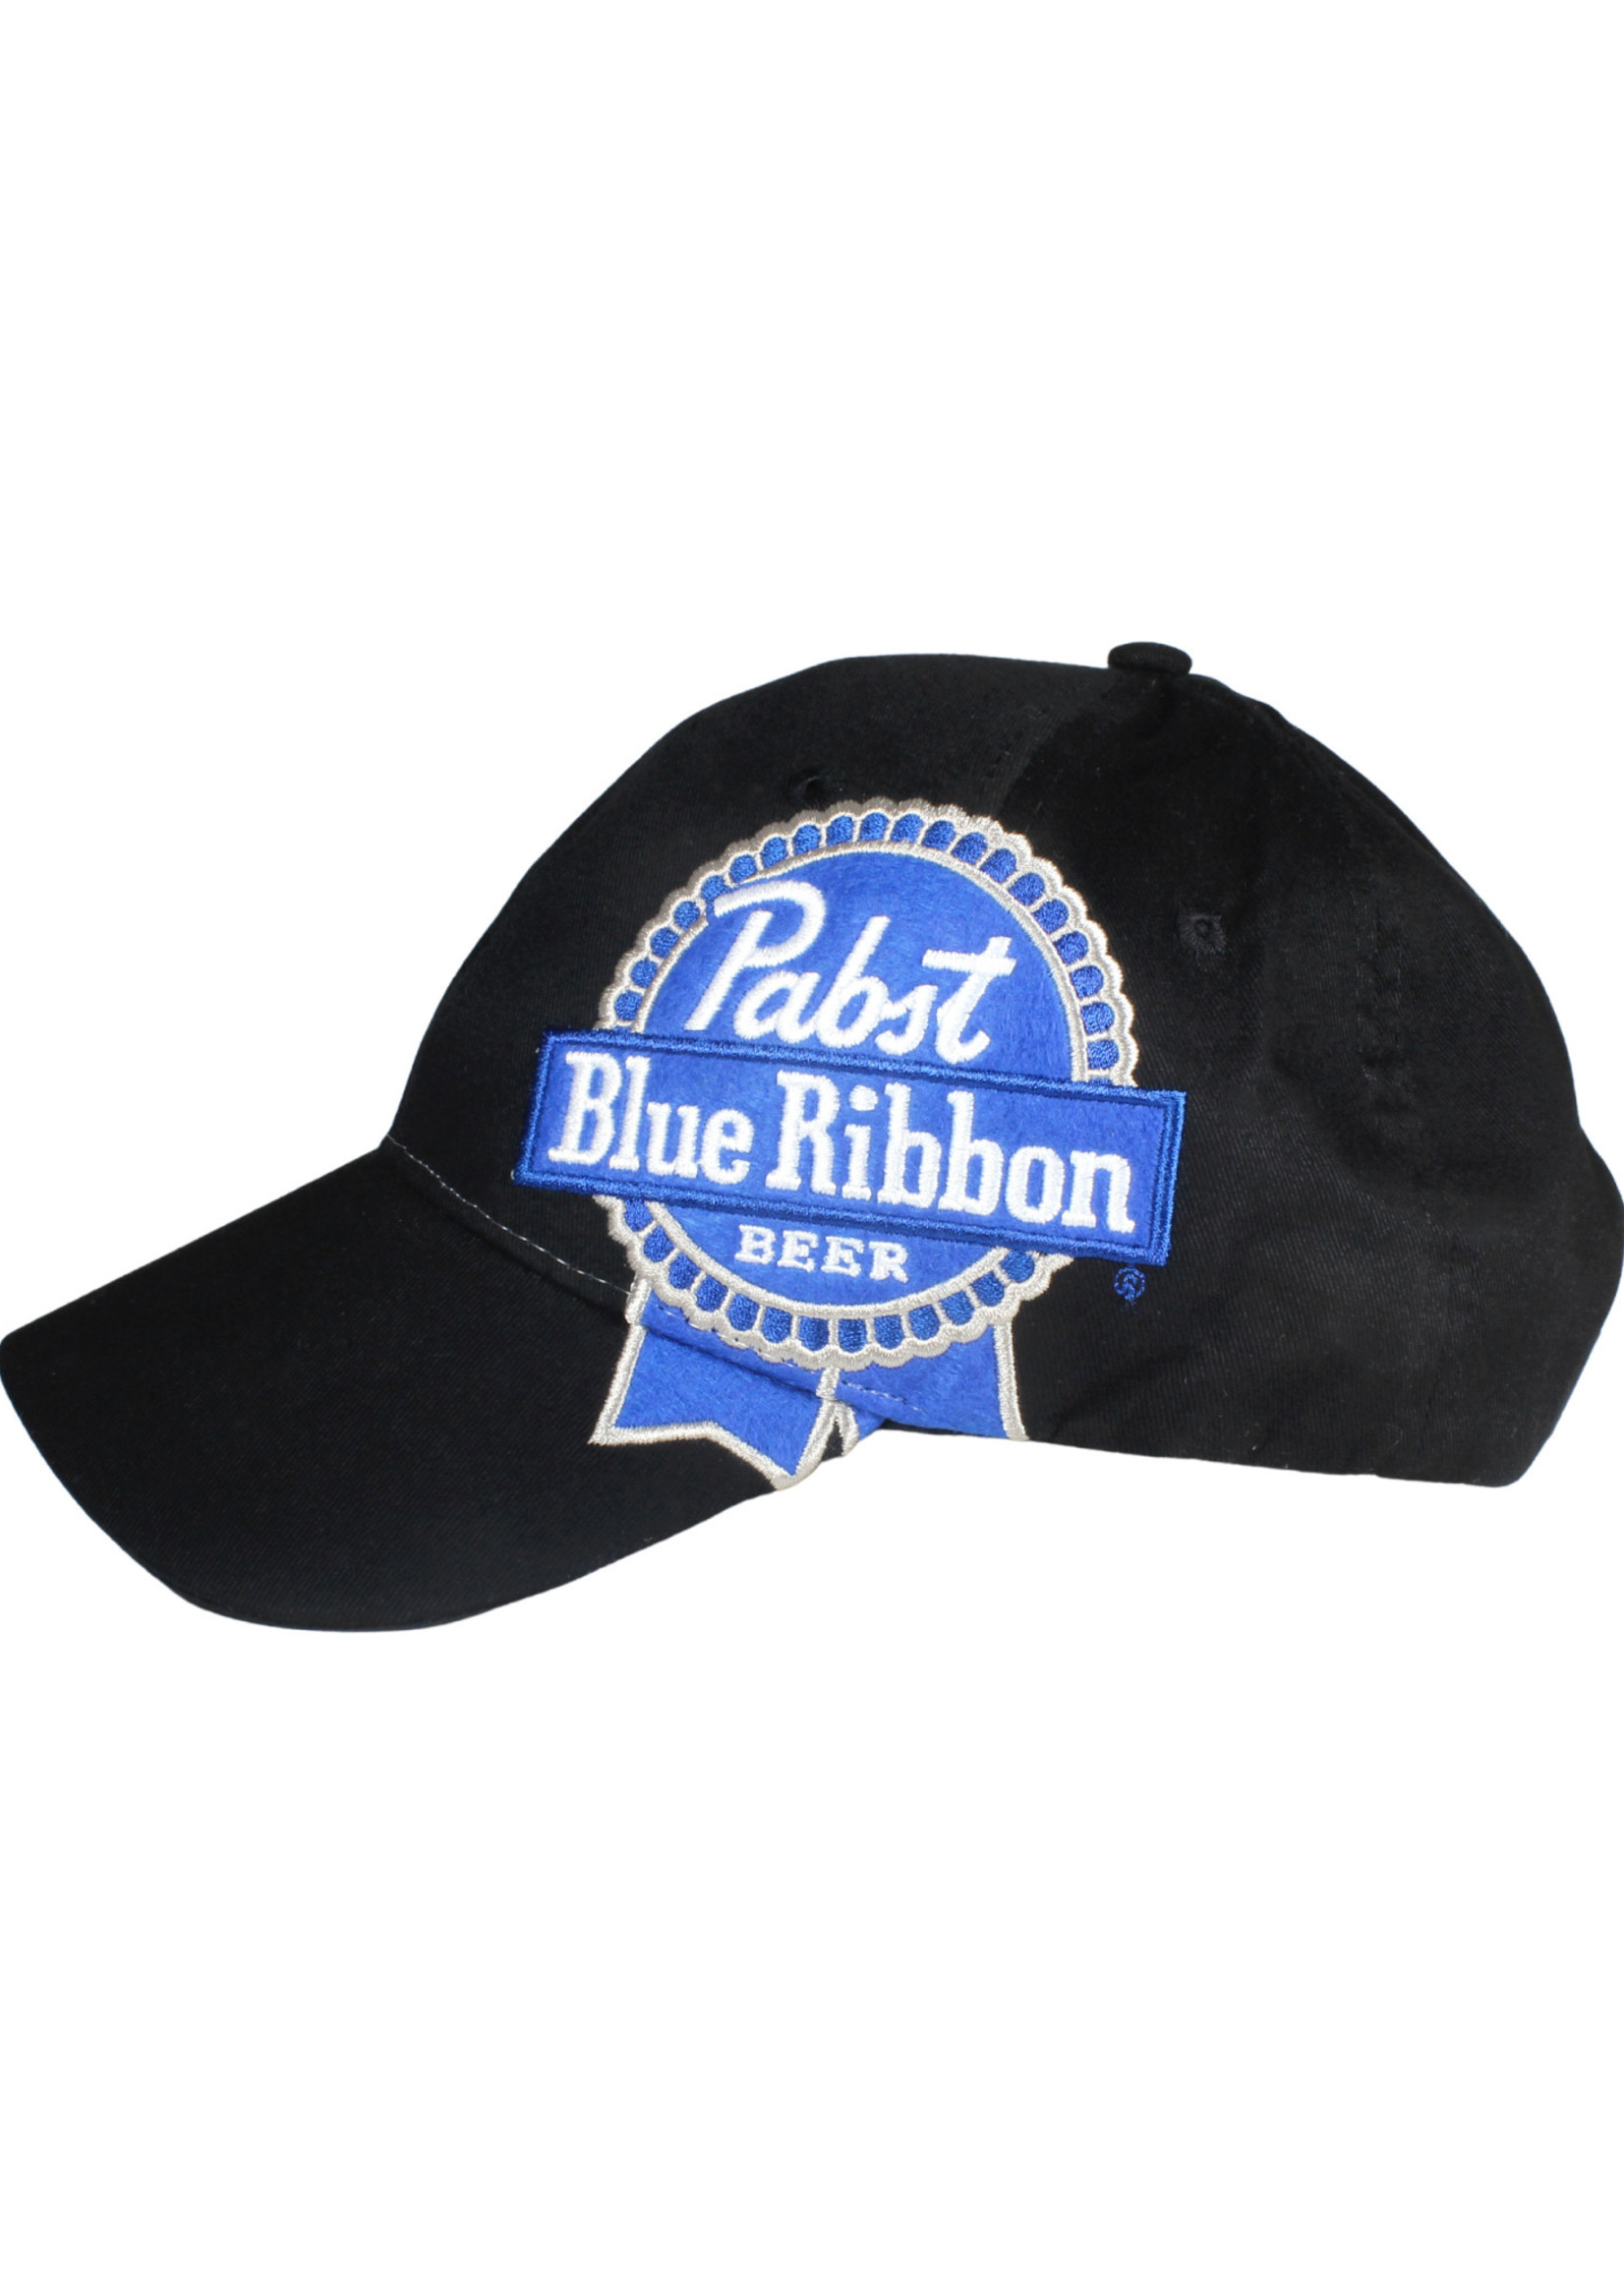 Pabst Pabst Black Side Ribbon Hat